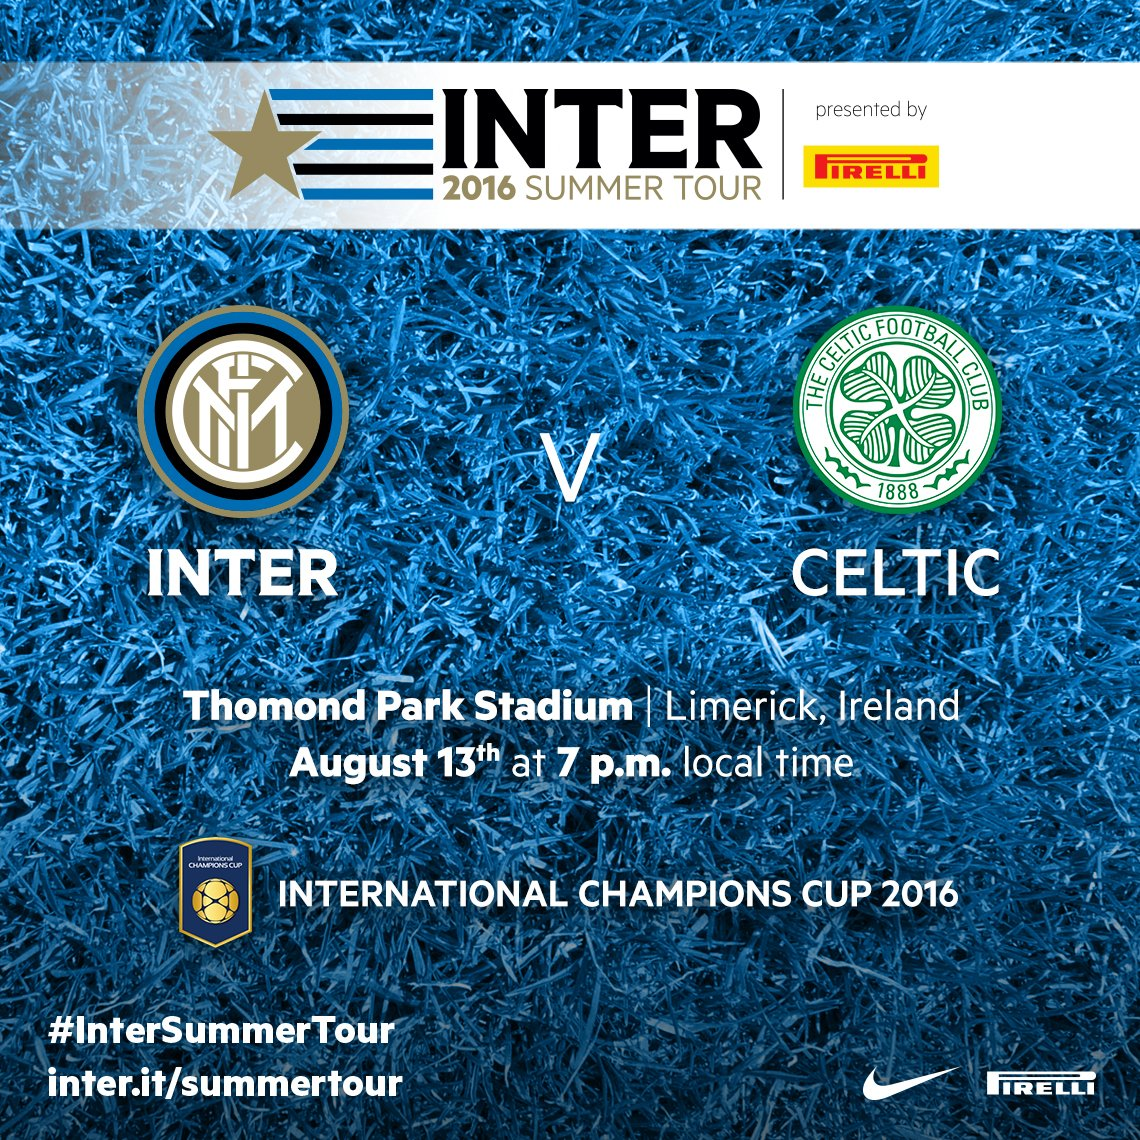 Diretta INTER CELTIC Streaming gratis Rojadirecta: dove vedere Video TV con Tablet iPhone e PC Live Oggi 13 agosto 2016